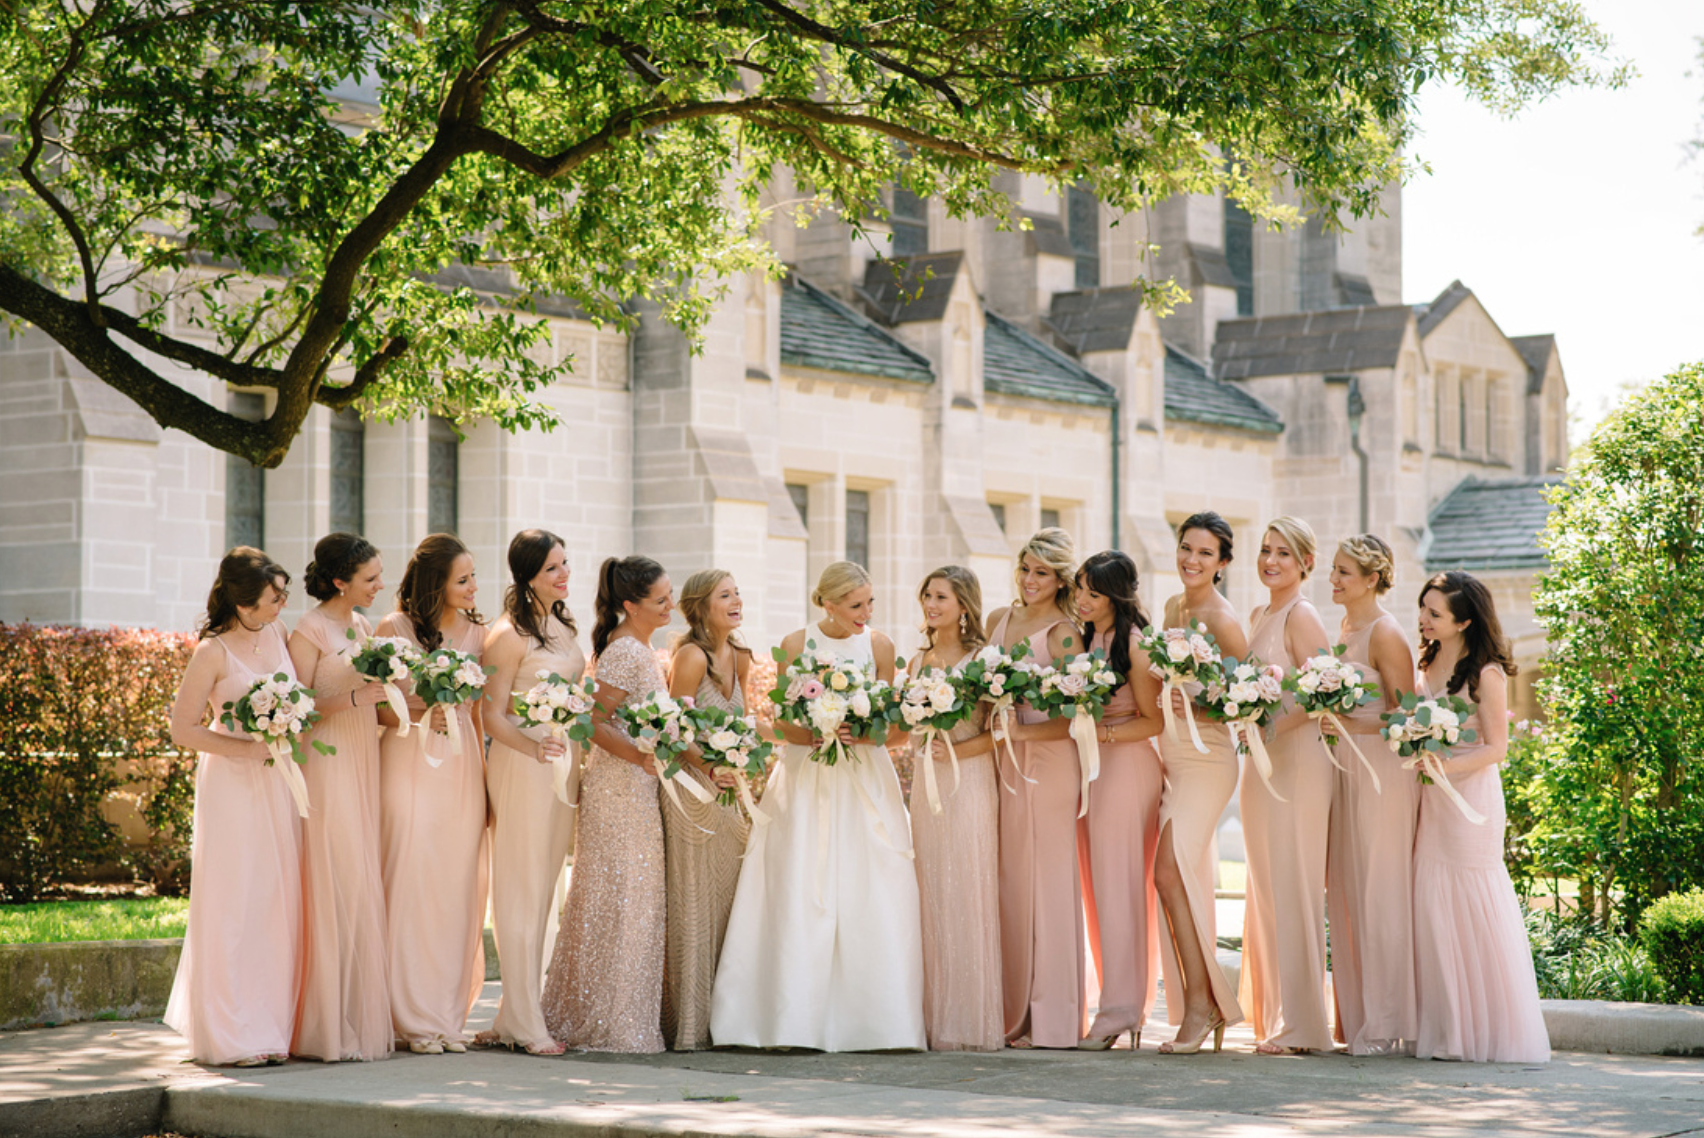 13 beautiful bridesmaids in blush colored dresses with bouquets by Maxit Flower Design in Houston, TX.